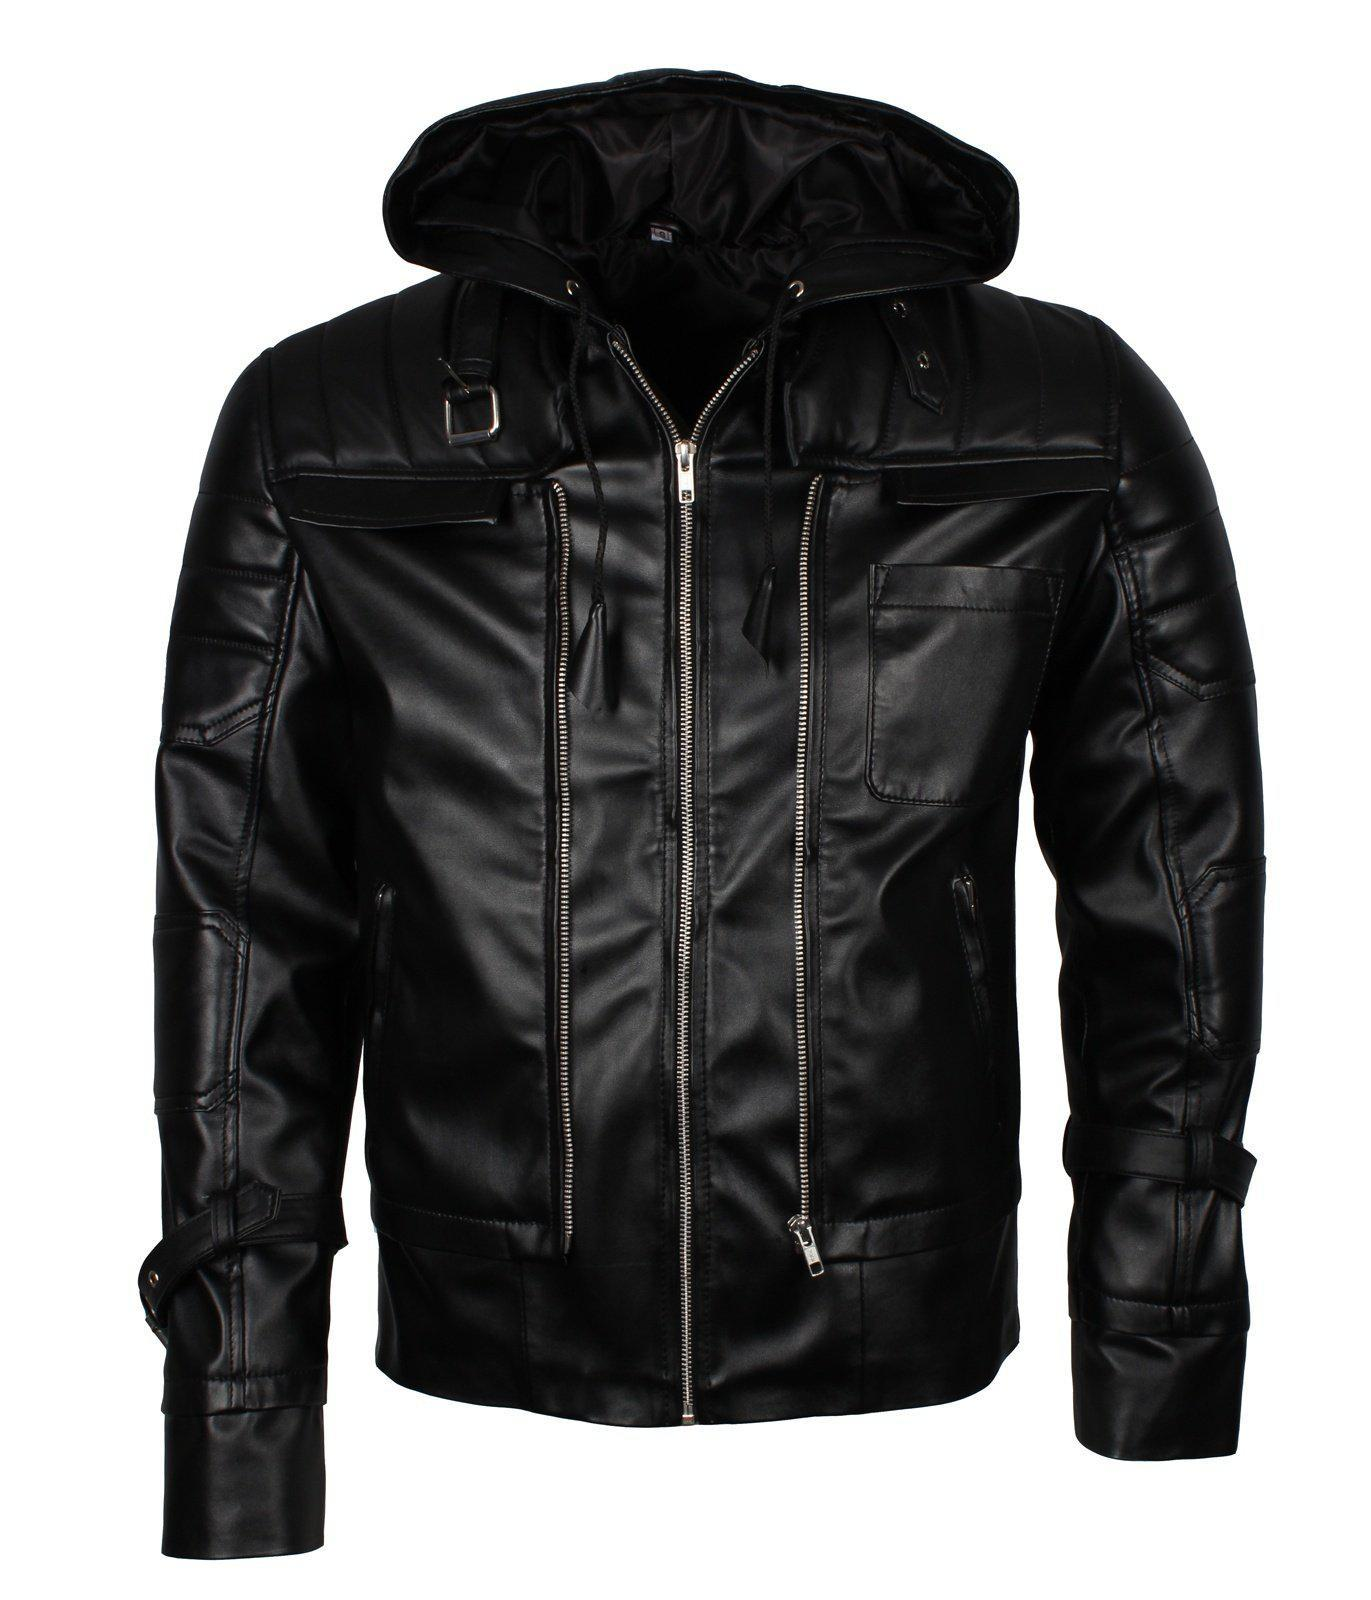 Batman Leather Jacket with Hood